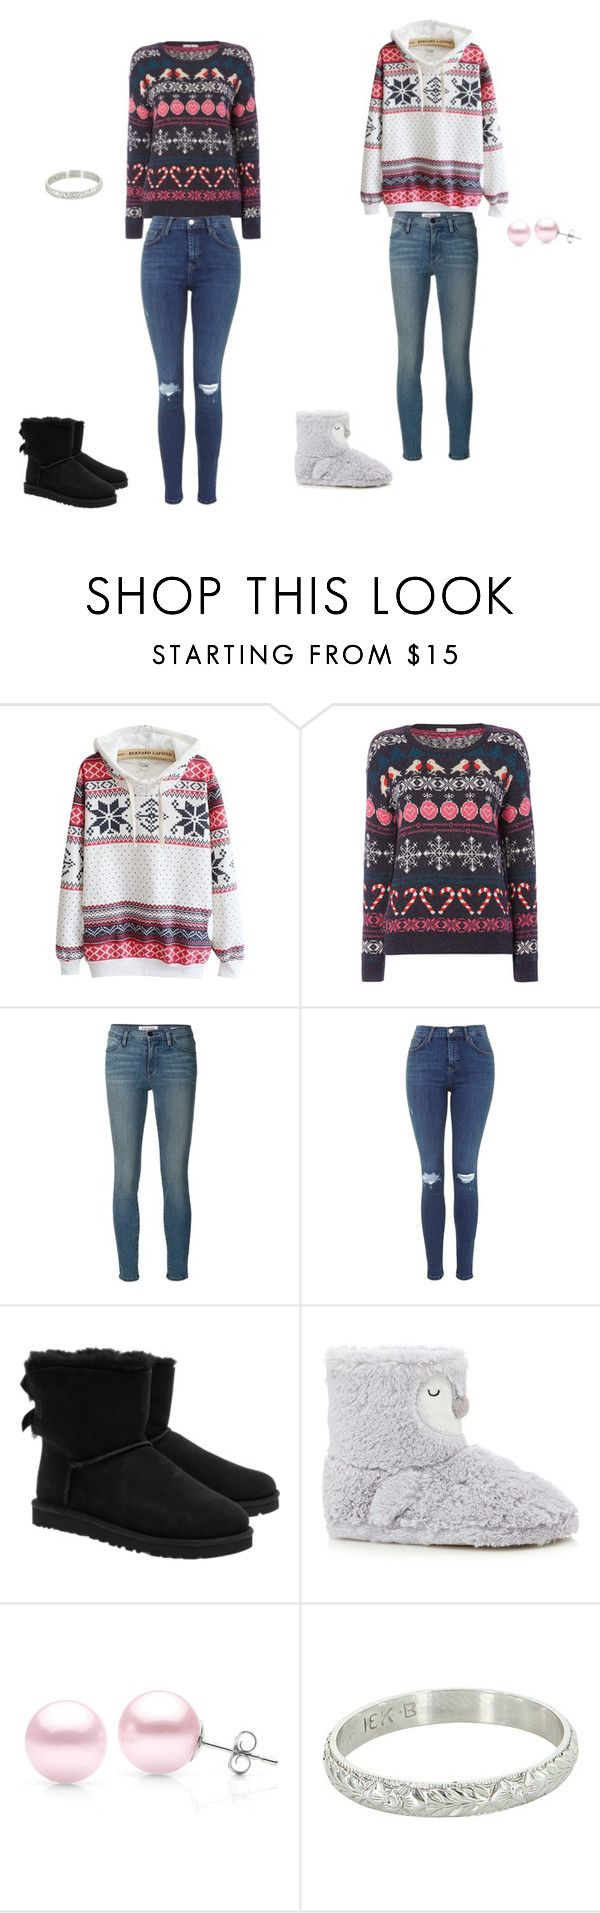 """cute winter outfit"" by icross-1 on Polyvore featuring Frame Denim, UGG Australia and Suzy Levian"